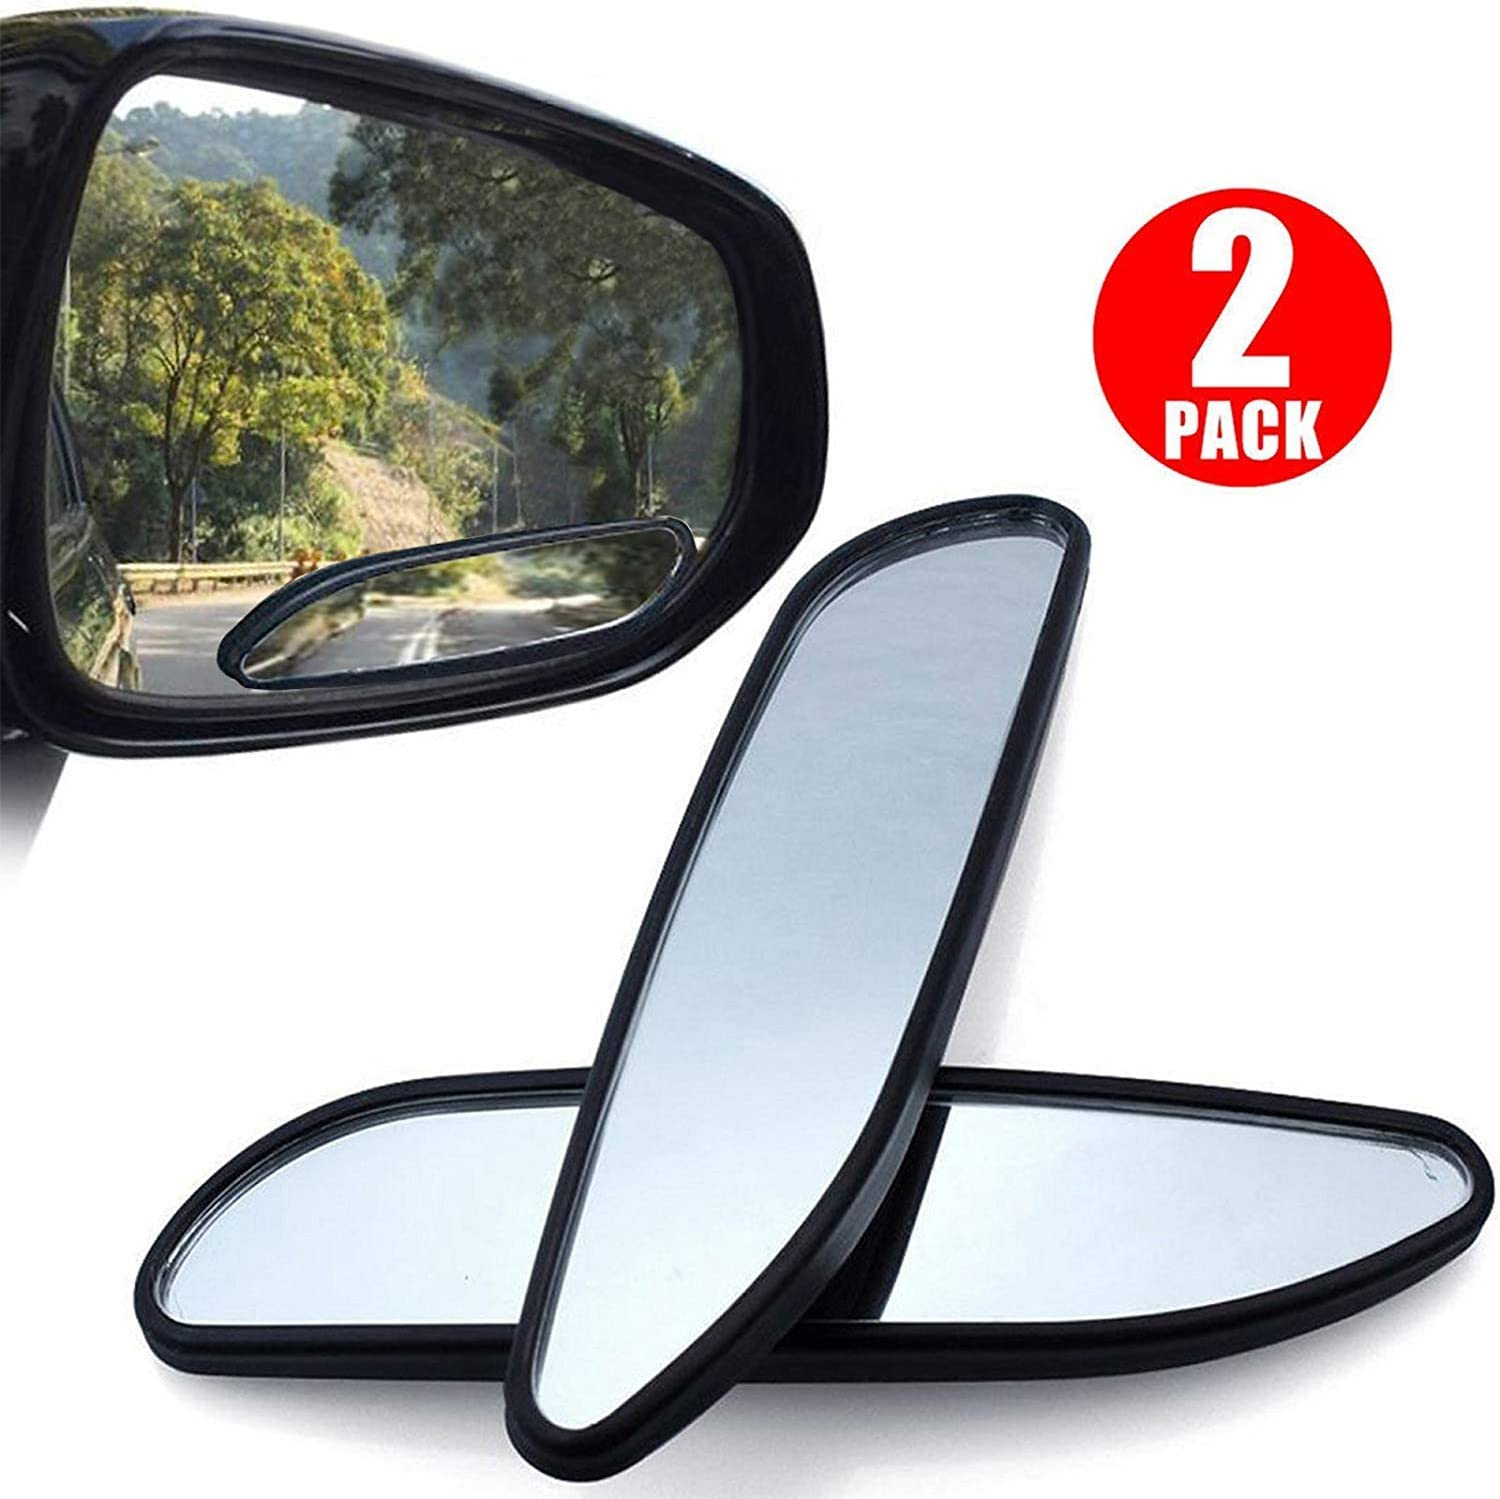 2x Convex Car RV Blind Spot Mirror Universal Useful Exterior Rear Side View